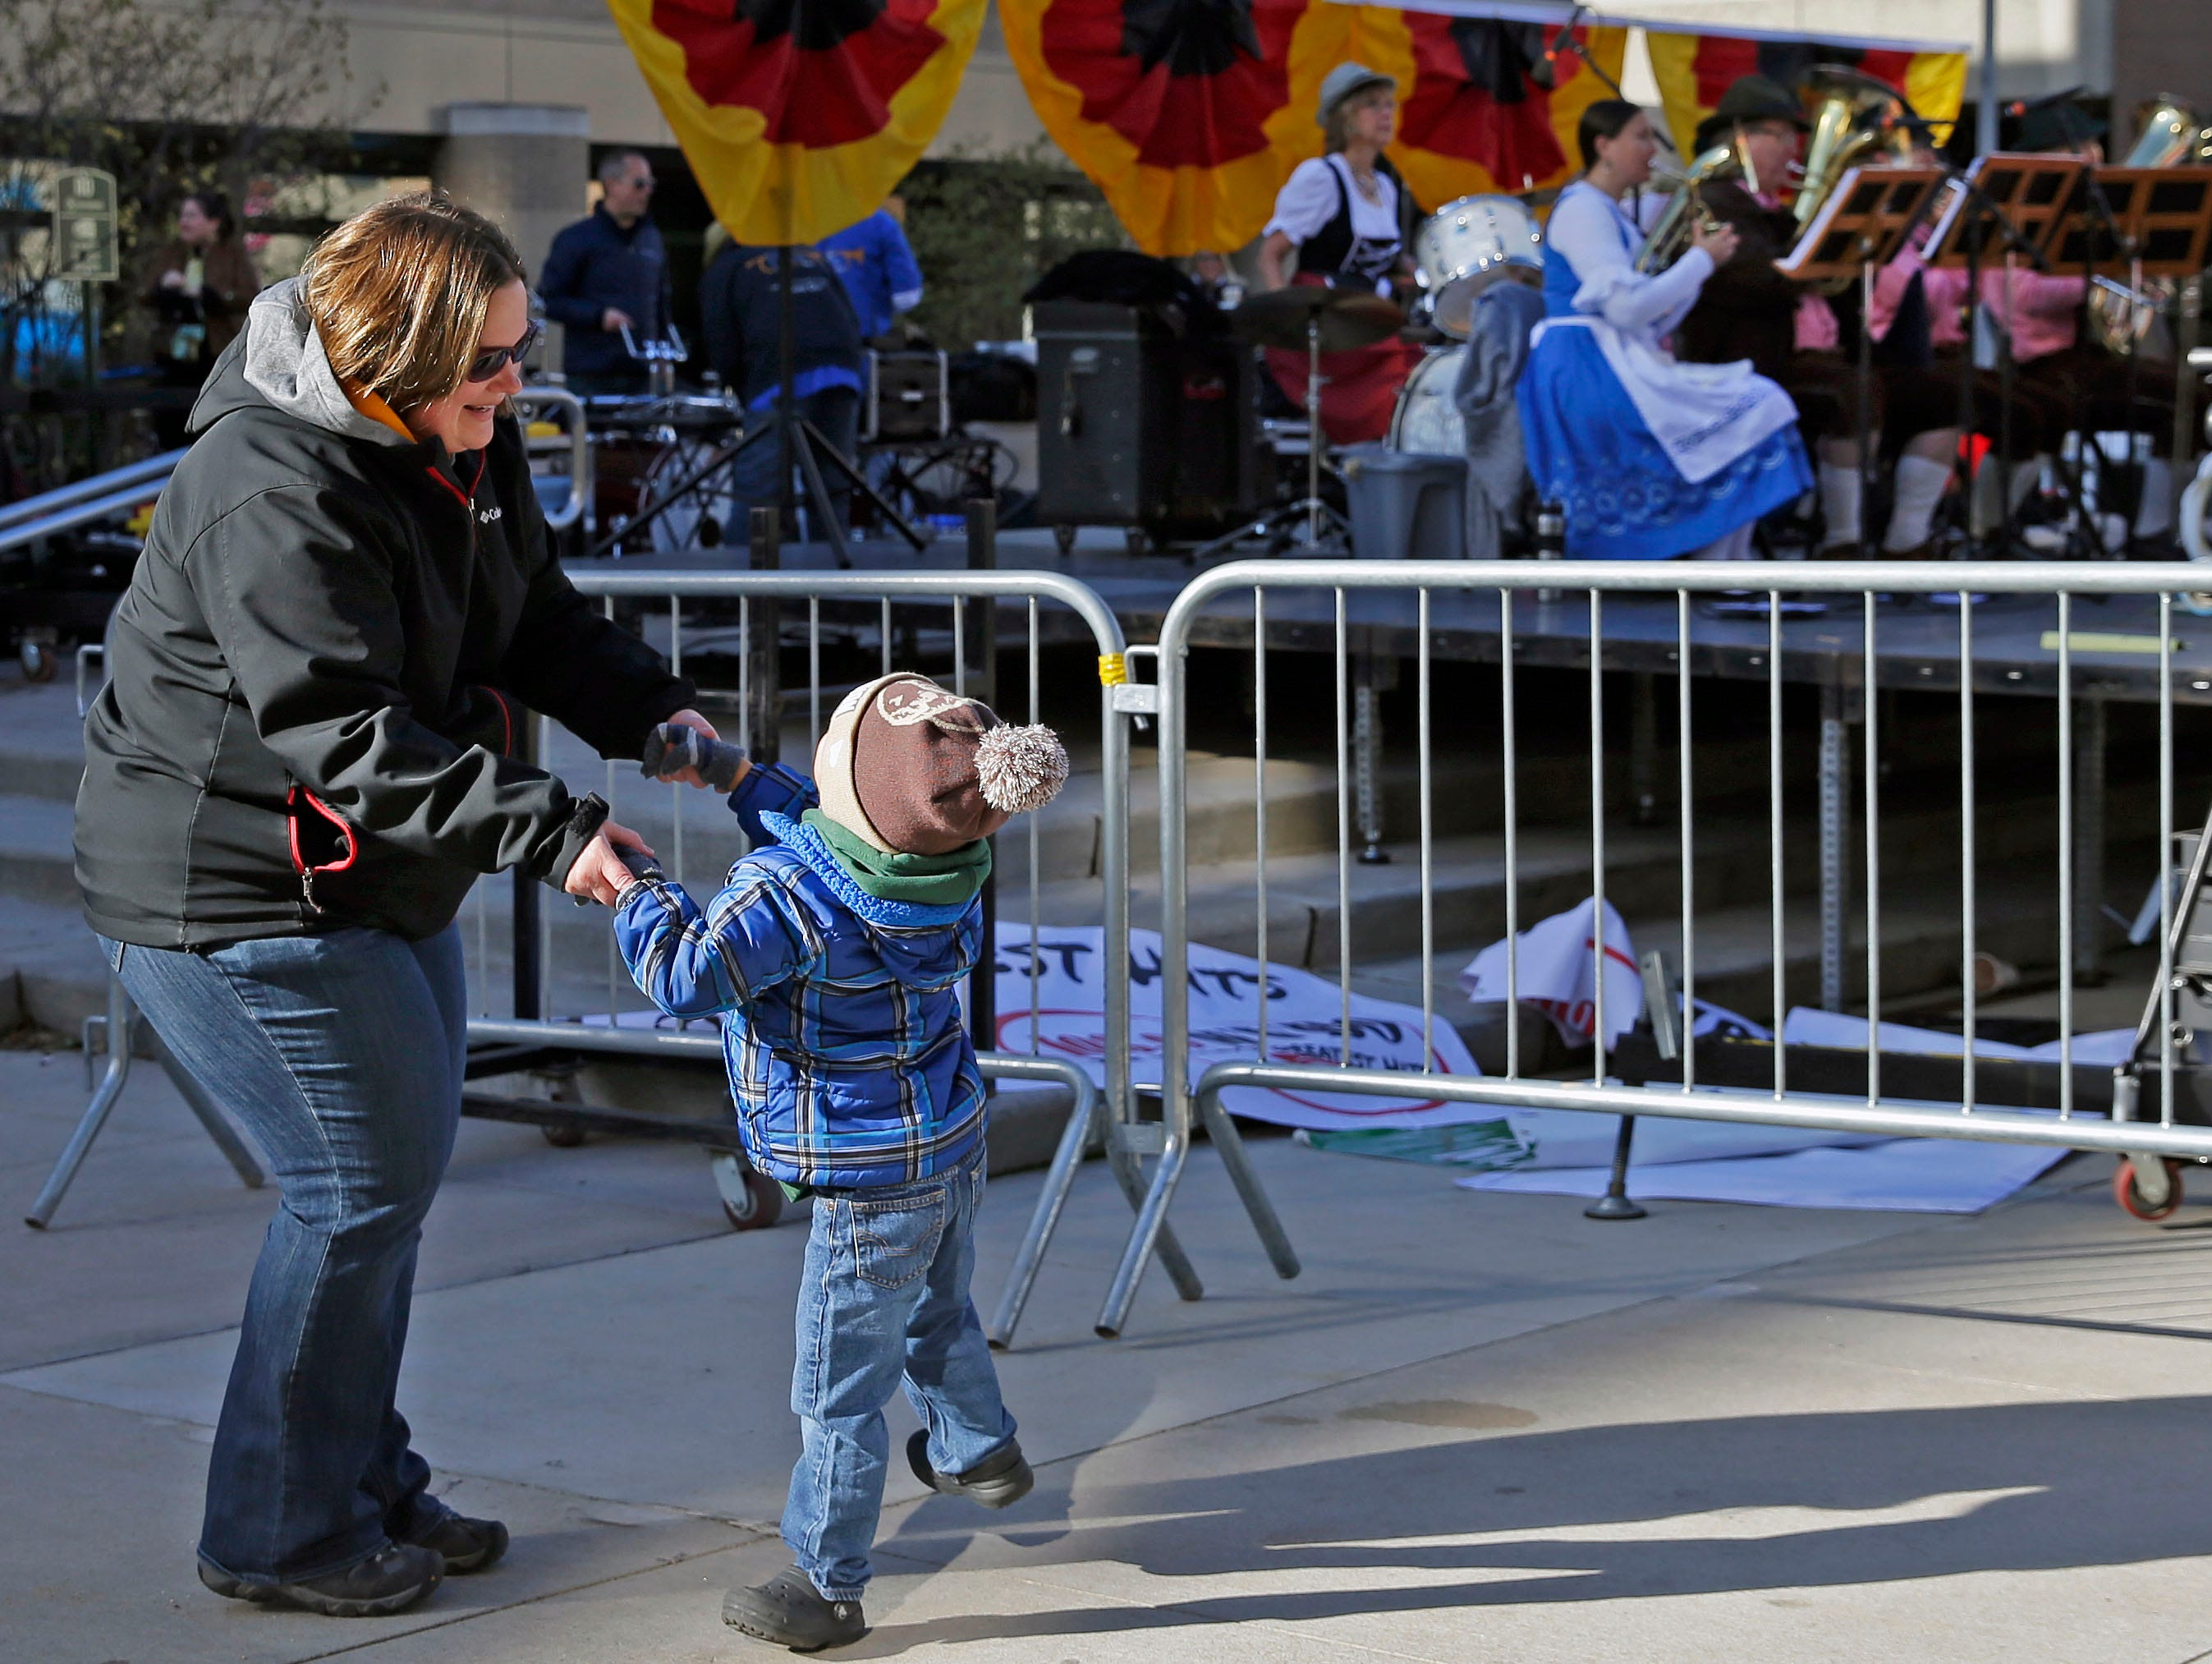 Stacey Grosnick and her nephew Grant Grosnick dance as the Newtonburg Oktoberfest Band performs during Octoberfest 2018 Saturday, September 29, 2018, in downtown Appleton, Wis.